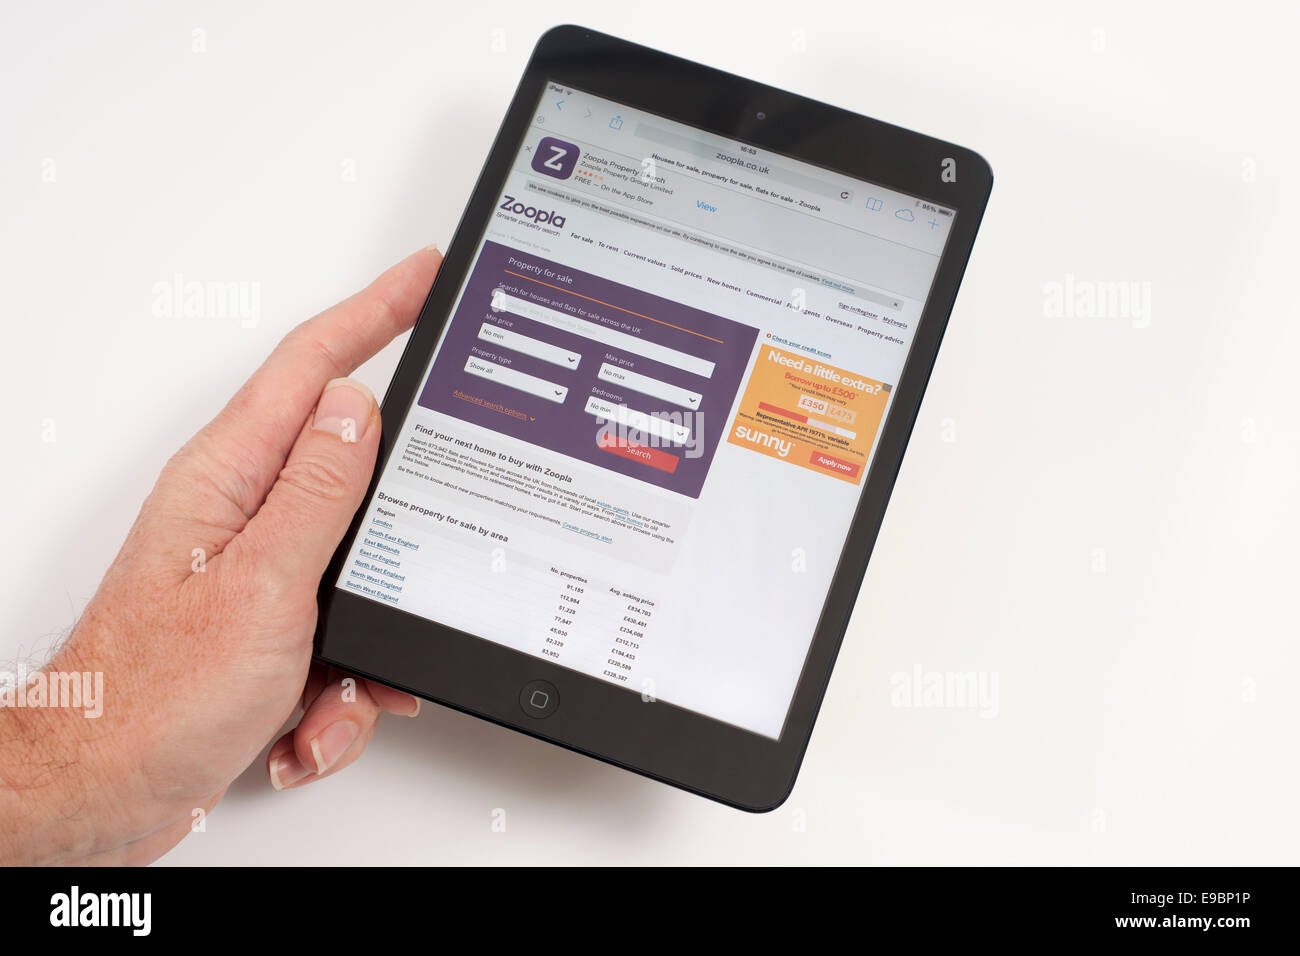 iPad mini with Zoopla property search engine on screen - Stock Image